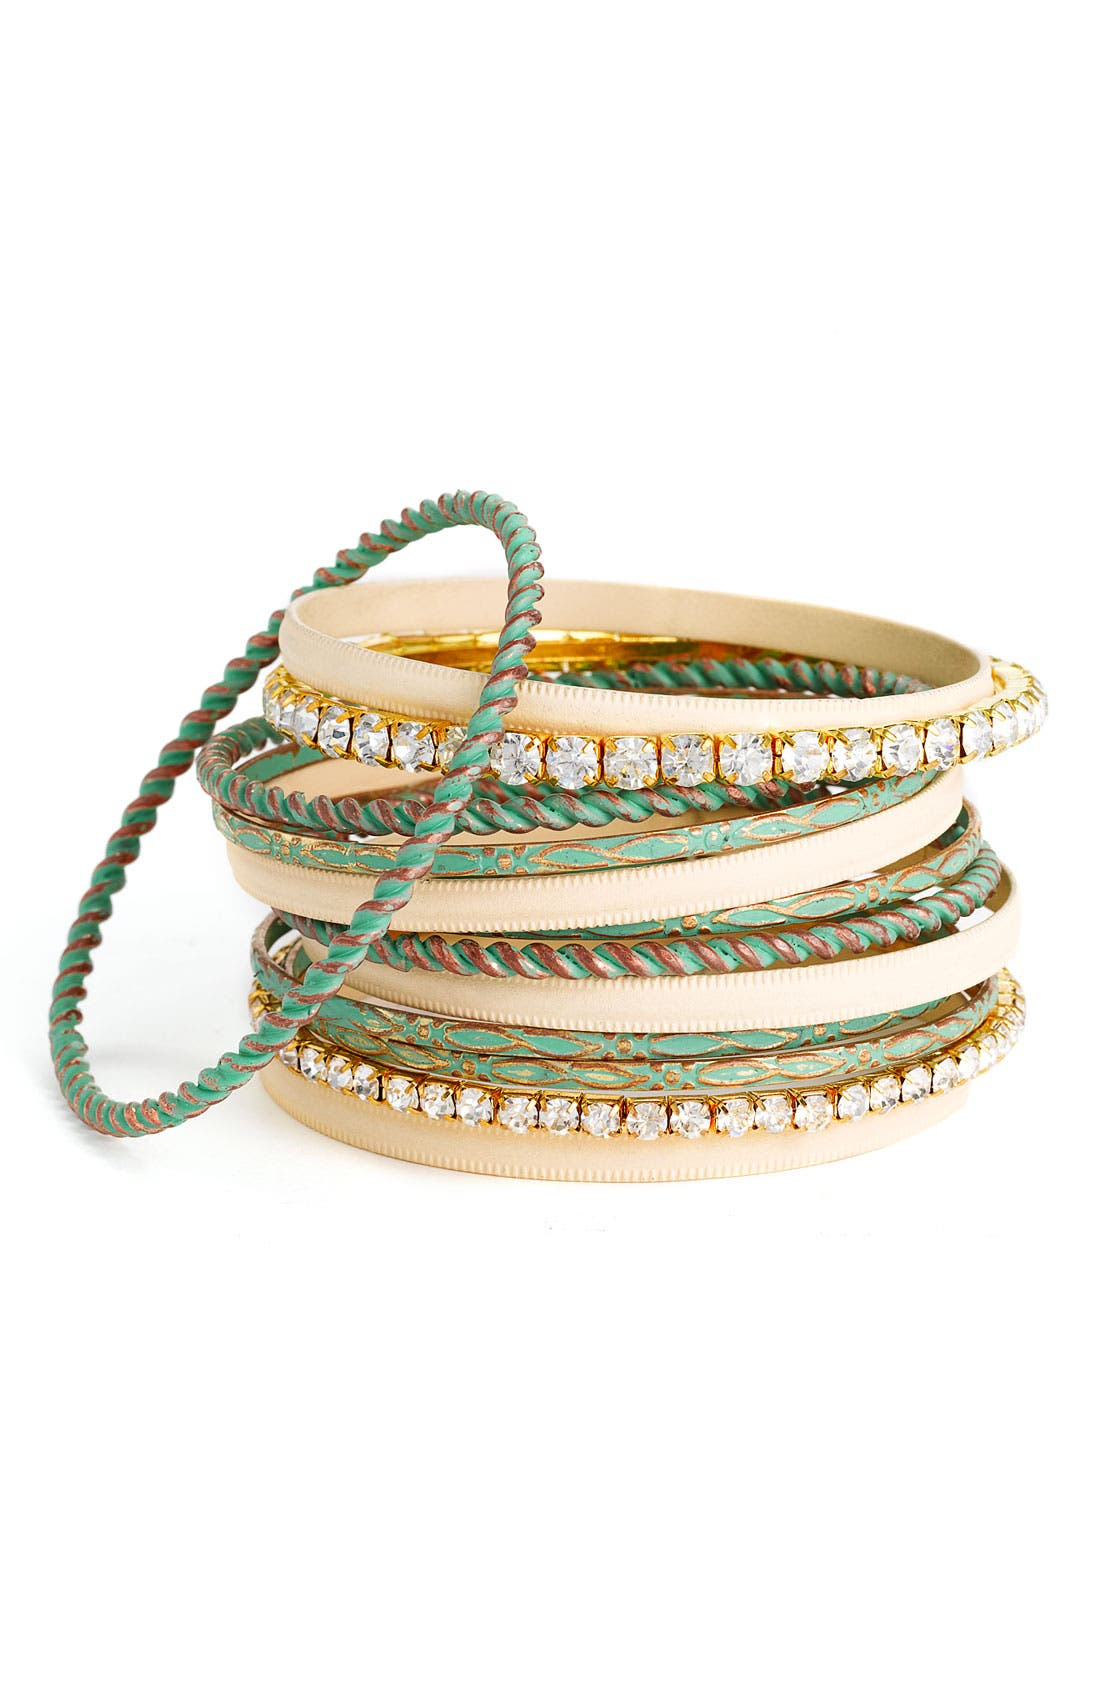 Accessories Crystal & Patina Finish Metal Bangles,                             Main thumbnail 1, color,                             440